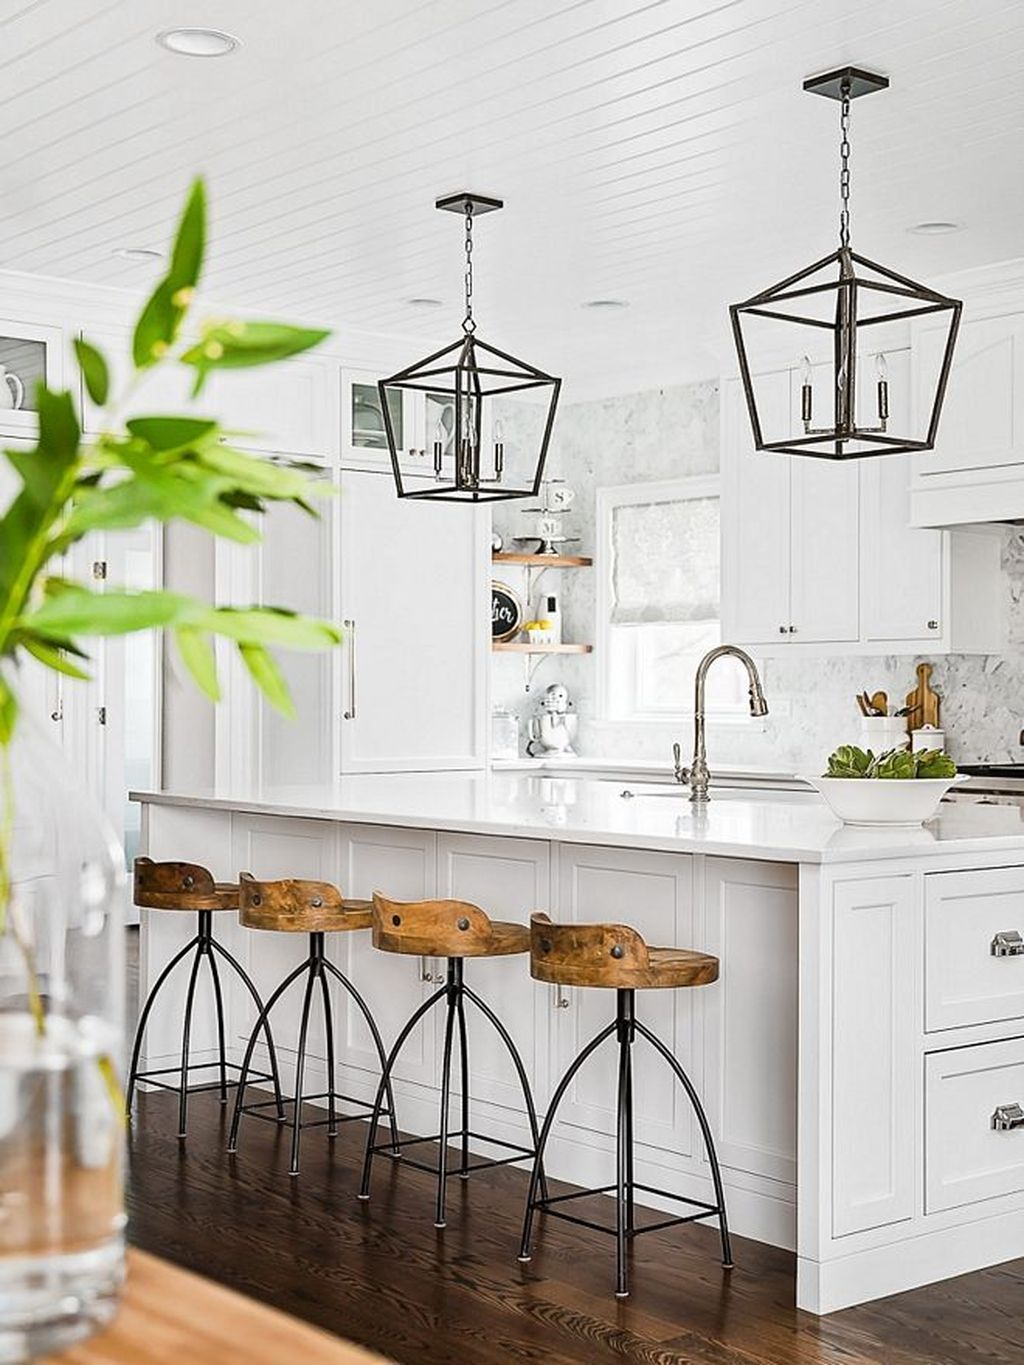 38 Stunning Kitchen Decoration Ideas With Rustic